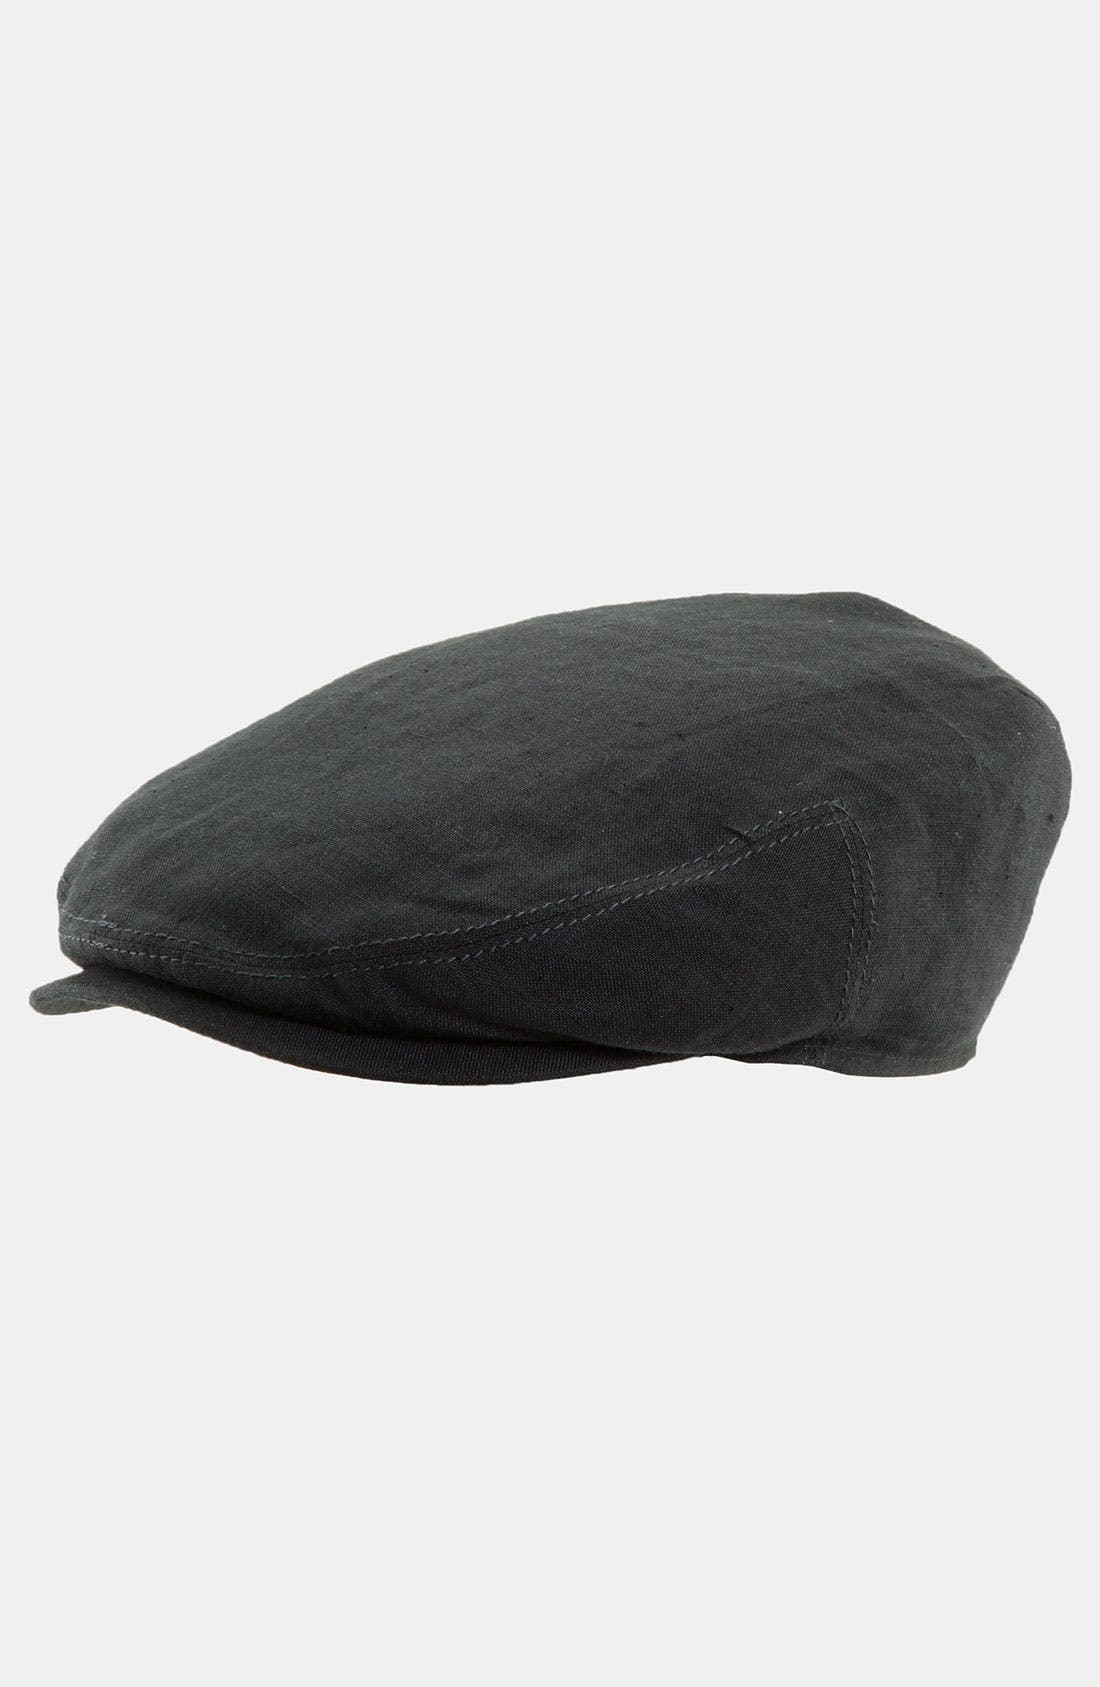 Alternate Image 1 Selected - Stetson 'Ivy' Linen Driving Cap